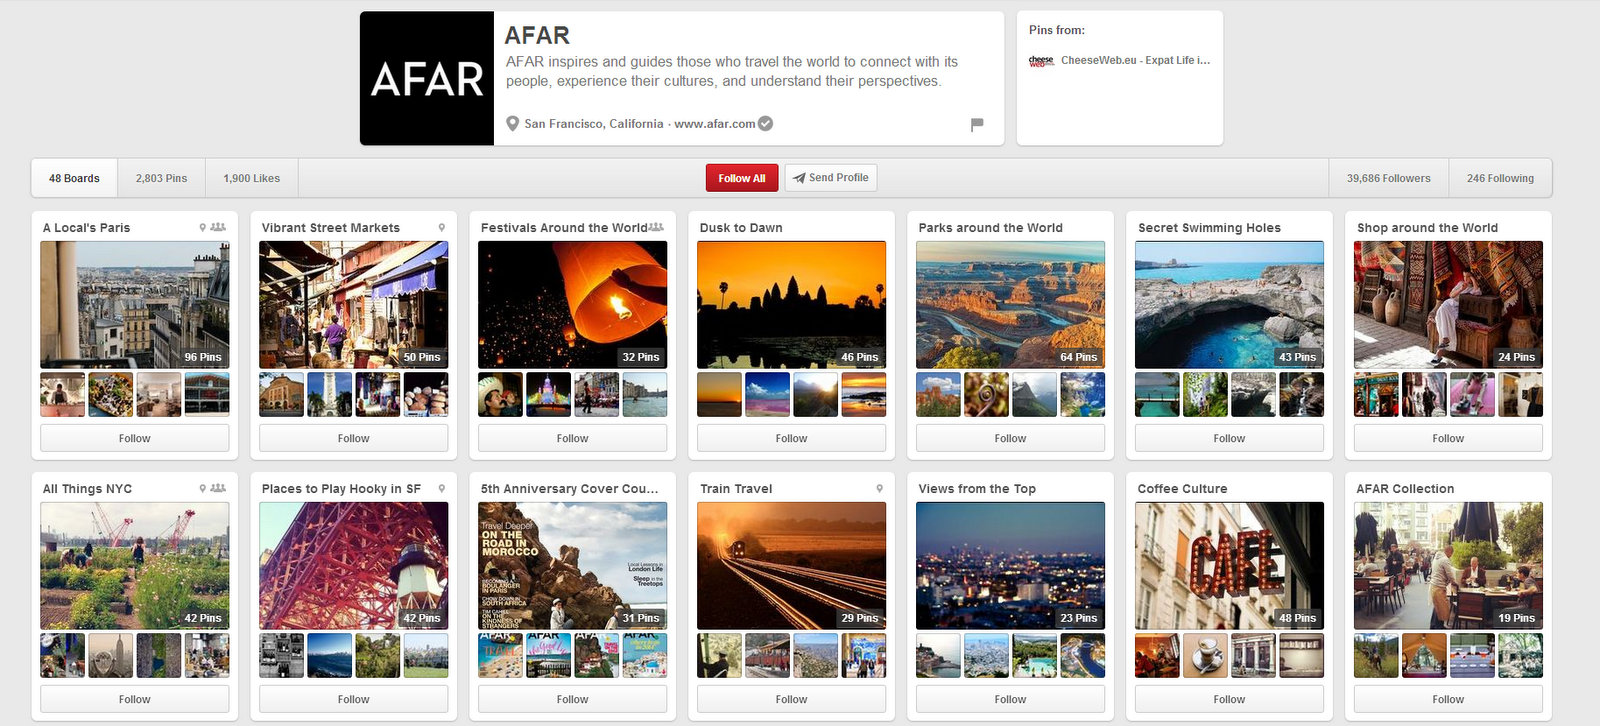 Afar on Pinterest.